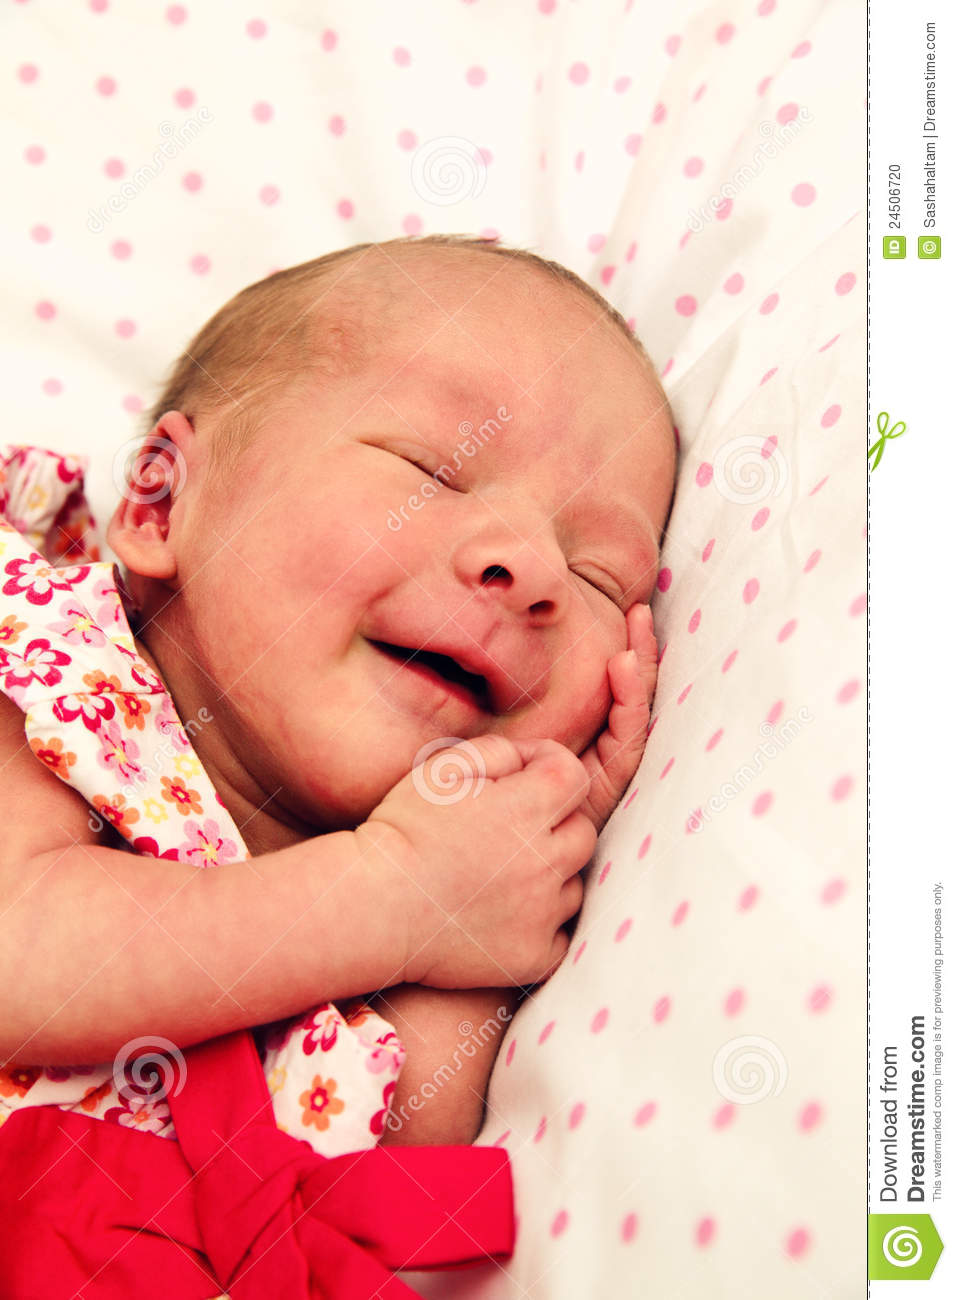 Adorable Sleeping Newborn Baby Girl Stock Photo - Image ...